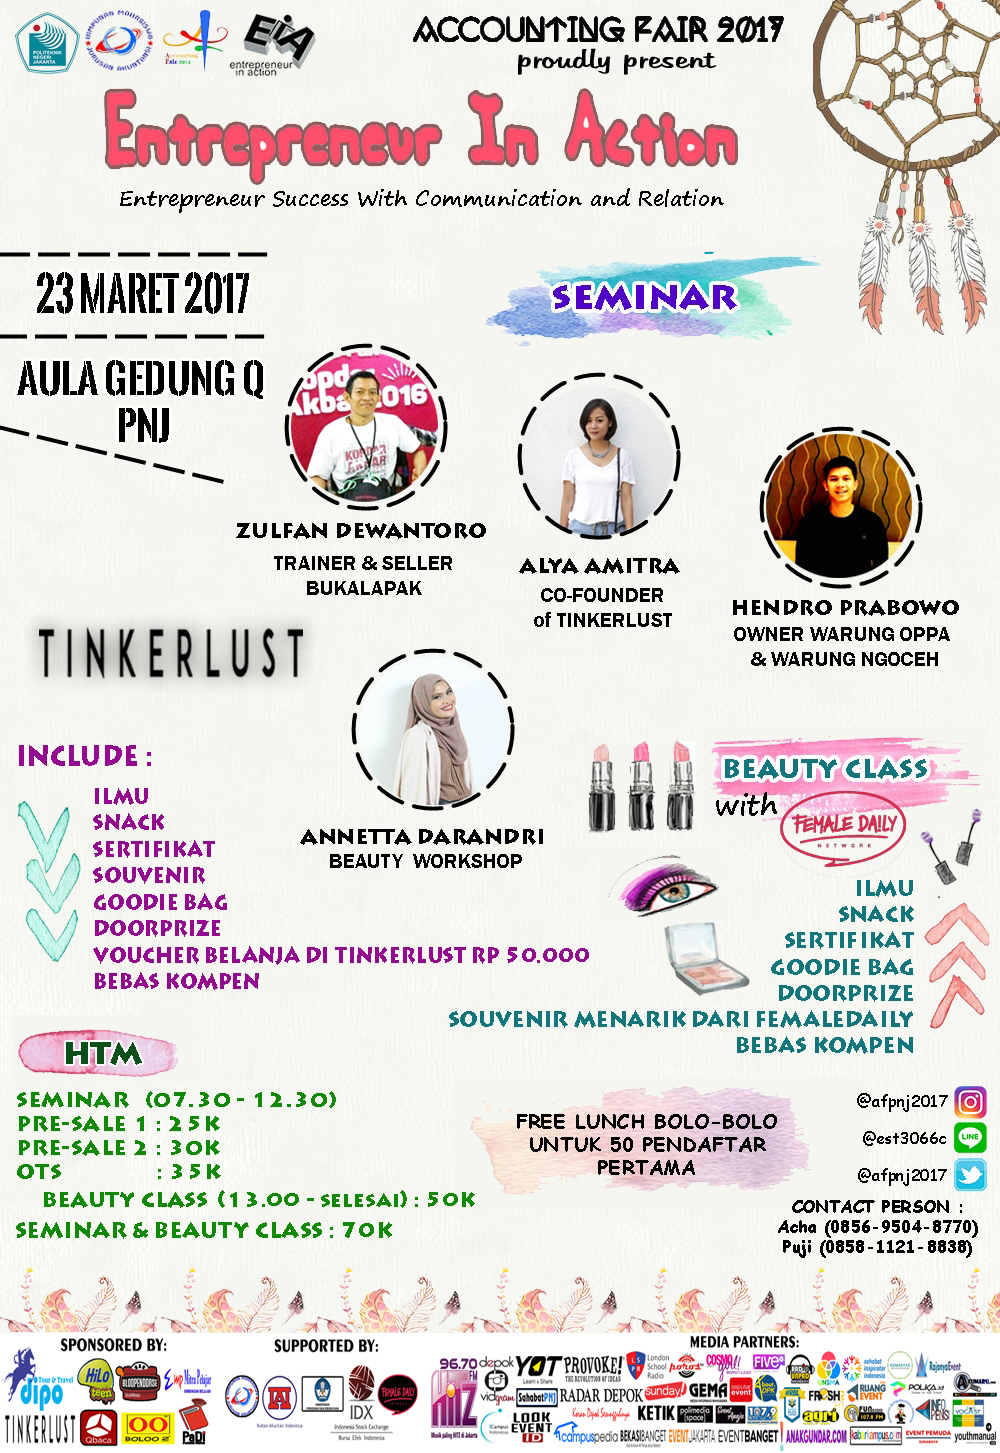 [UPCOMING EVENT] Seminar Kewirausahaan & Beauty Class